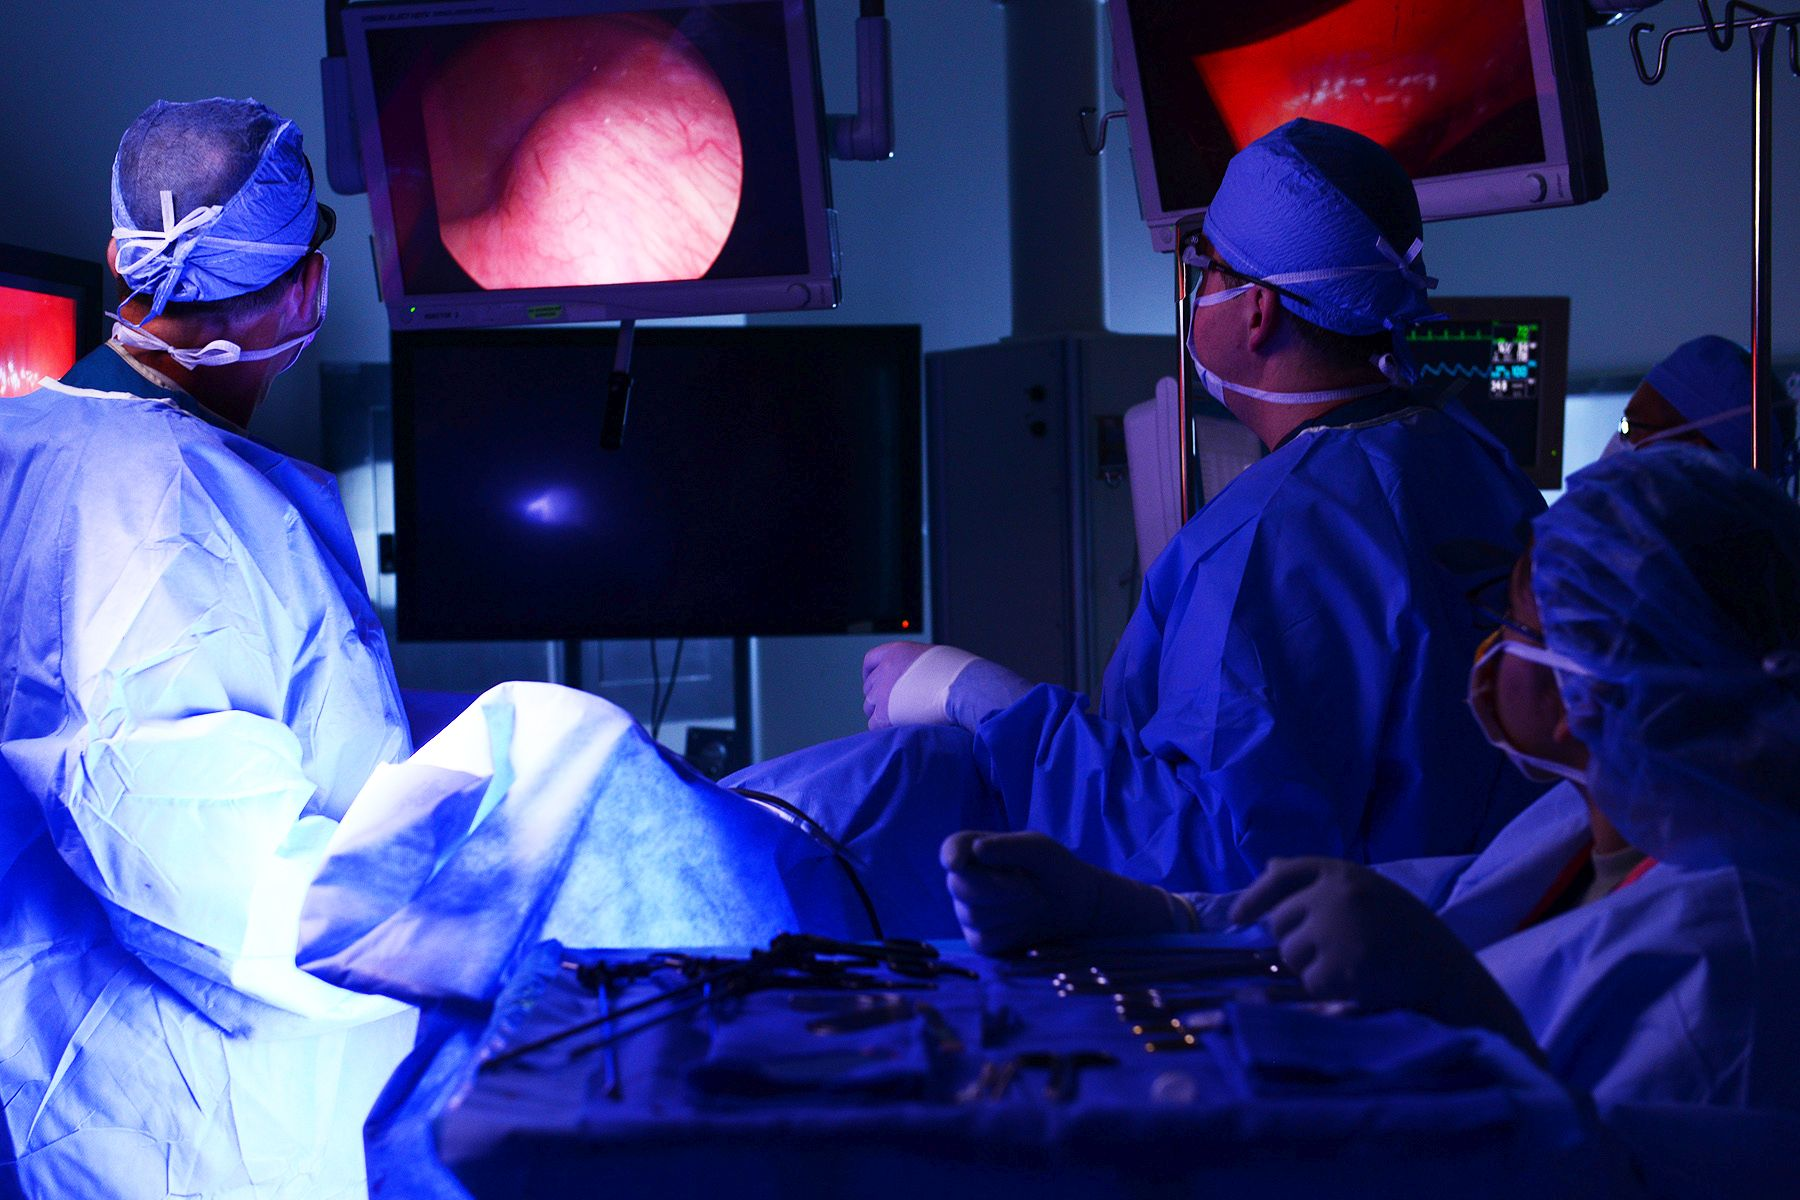 U.S. Air Force Maj. Arthur Greenwood and Capt. Stuart Winkler, 633rd Surgical Operations Squadron obstetricians, stitch up an incision after performing a laparoscopic hysterectomy at Langley Air Force Bae, Va., June 14, 2016.